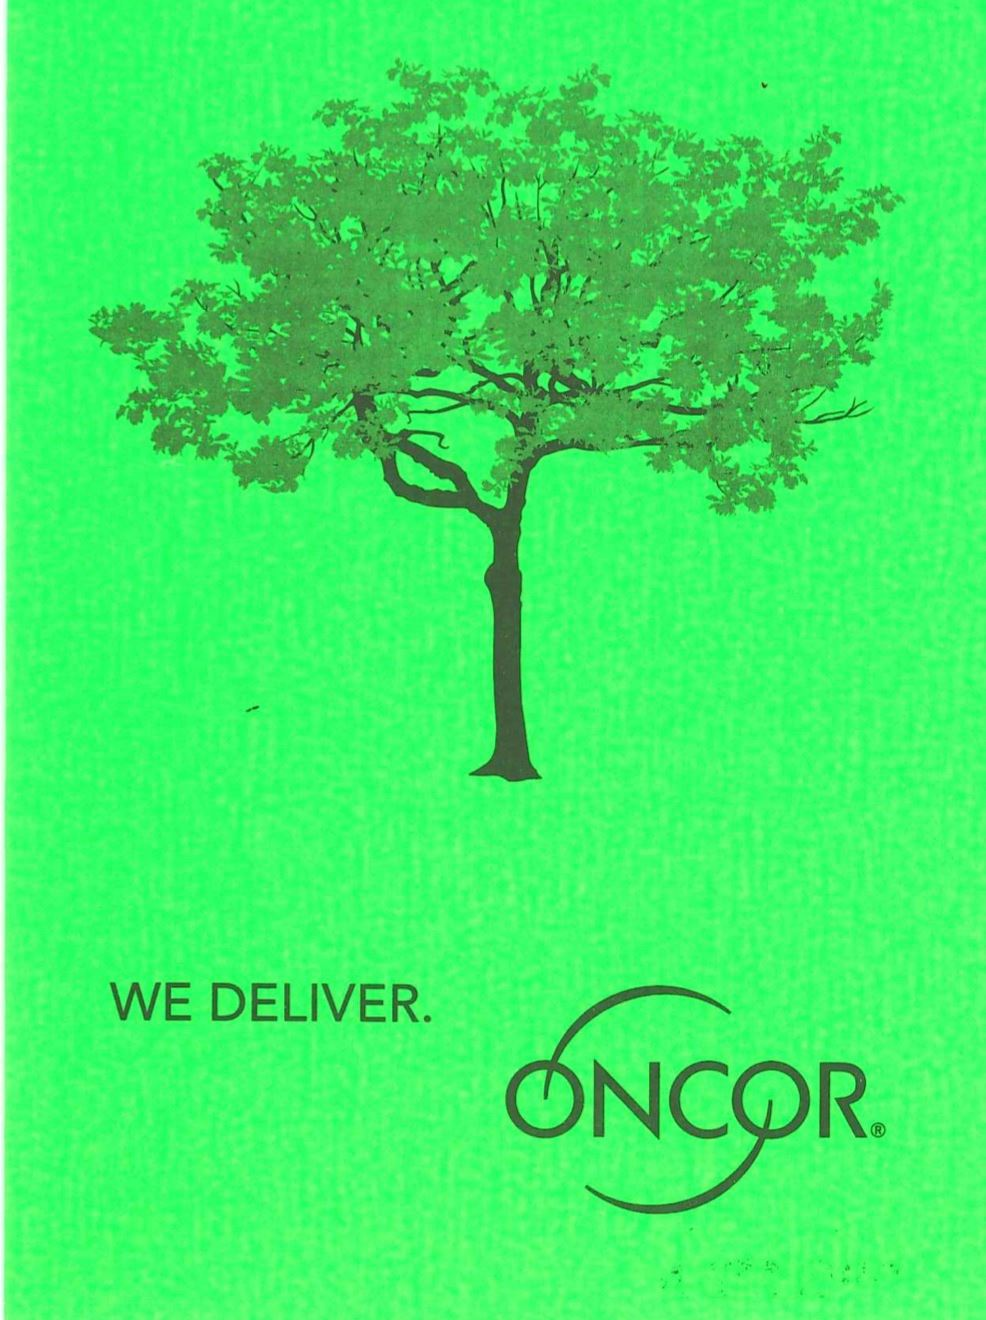 Oncor Tree Trimming Door Hanger